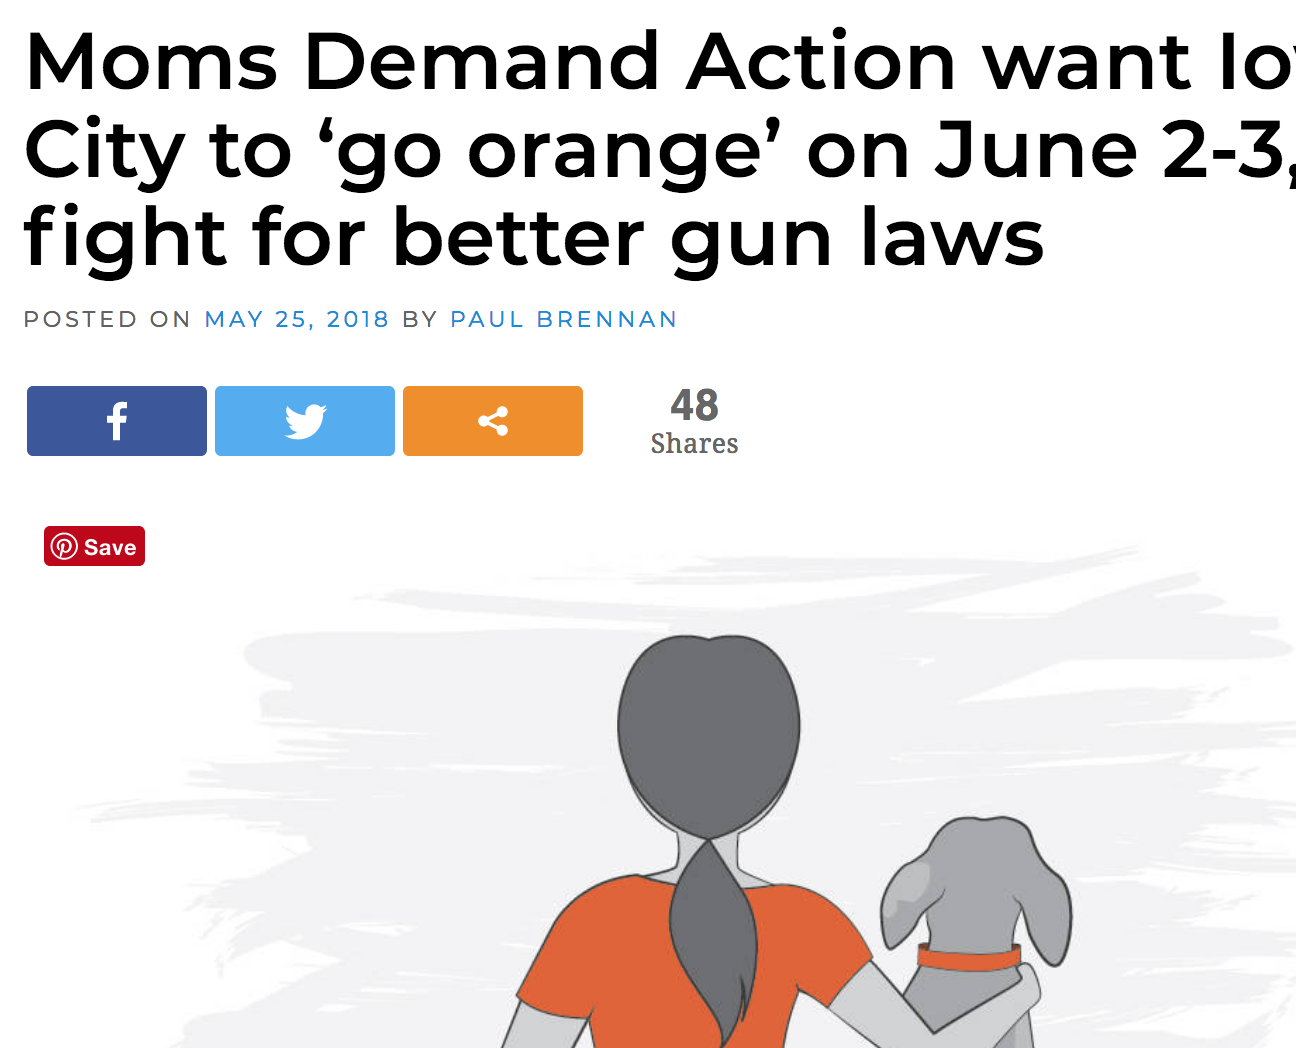 Moms Demand Action want Iowa City to 'go orange' on June 2-3 to fight for better gun laws